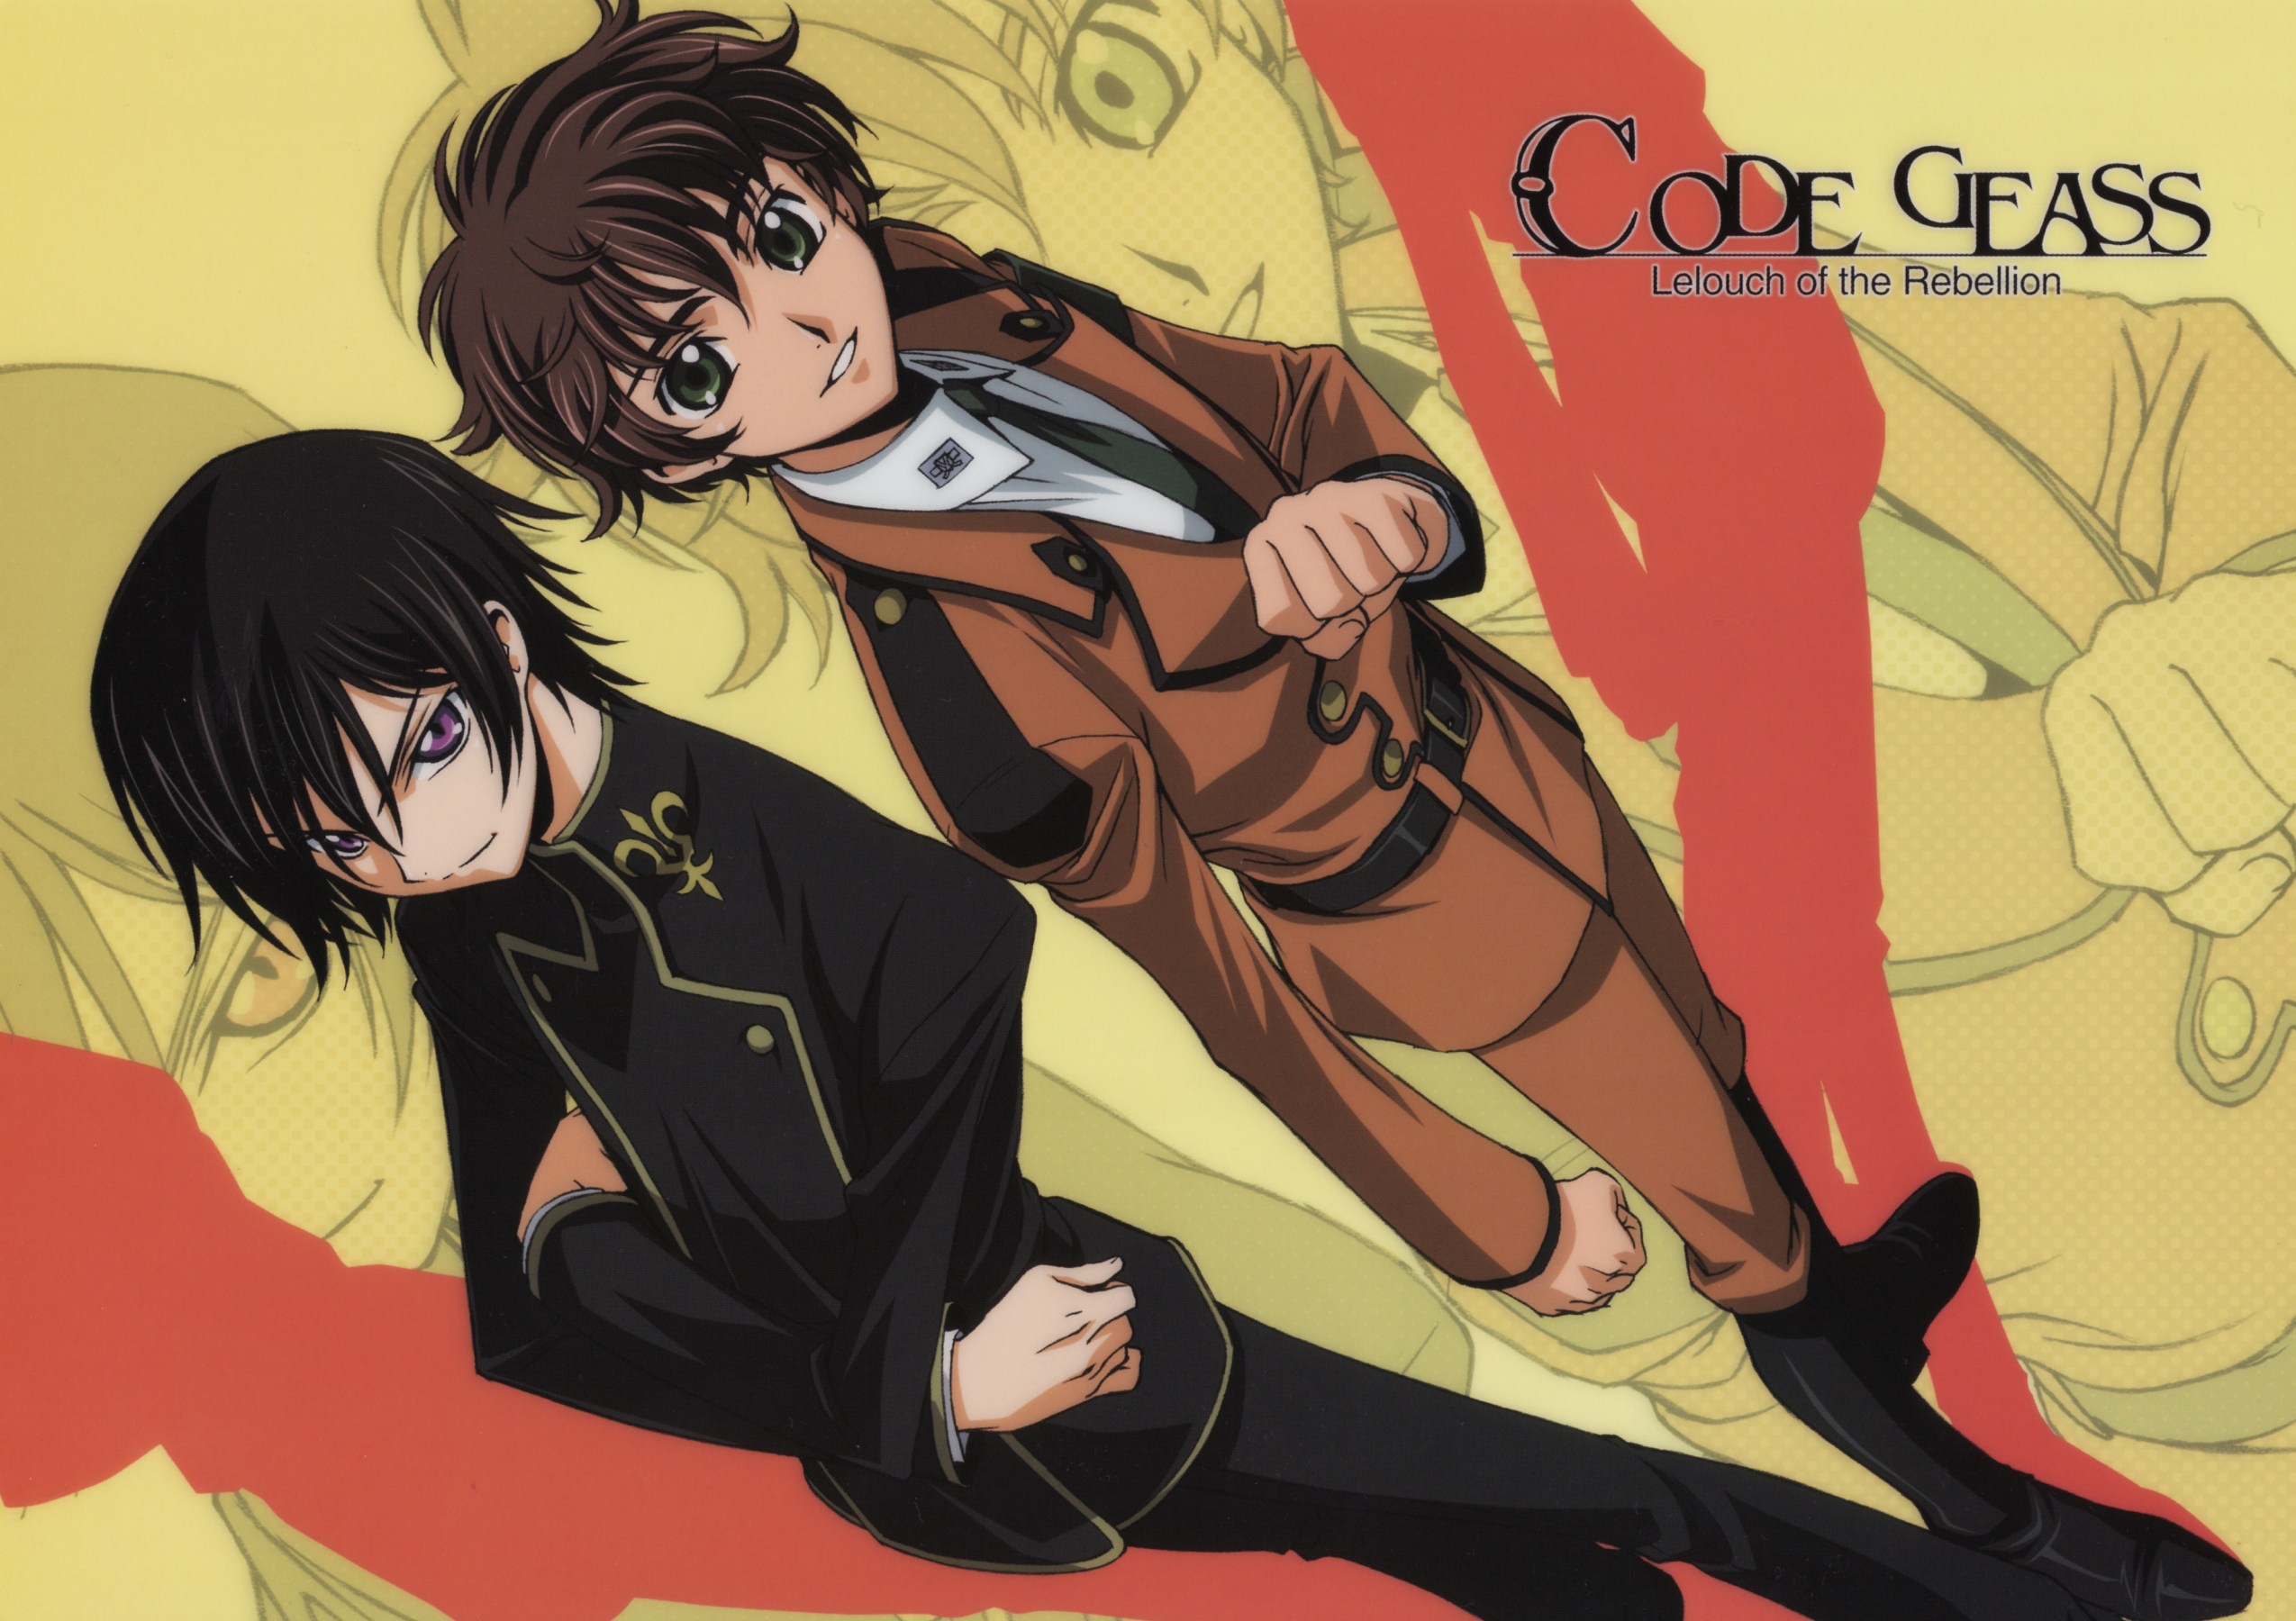 lelouch and suzaku relationship problems